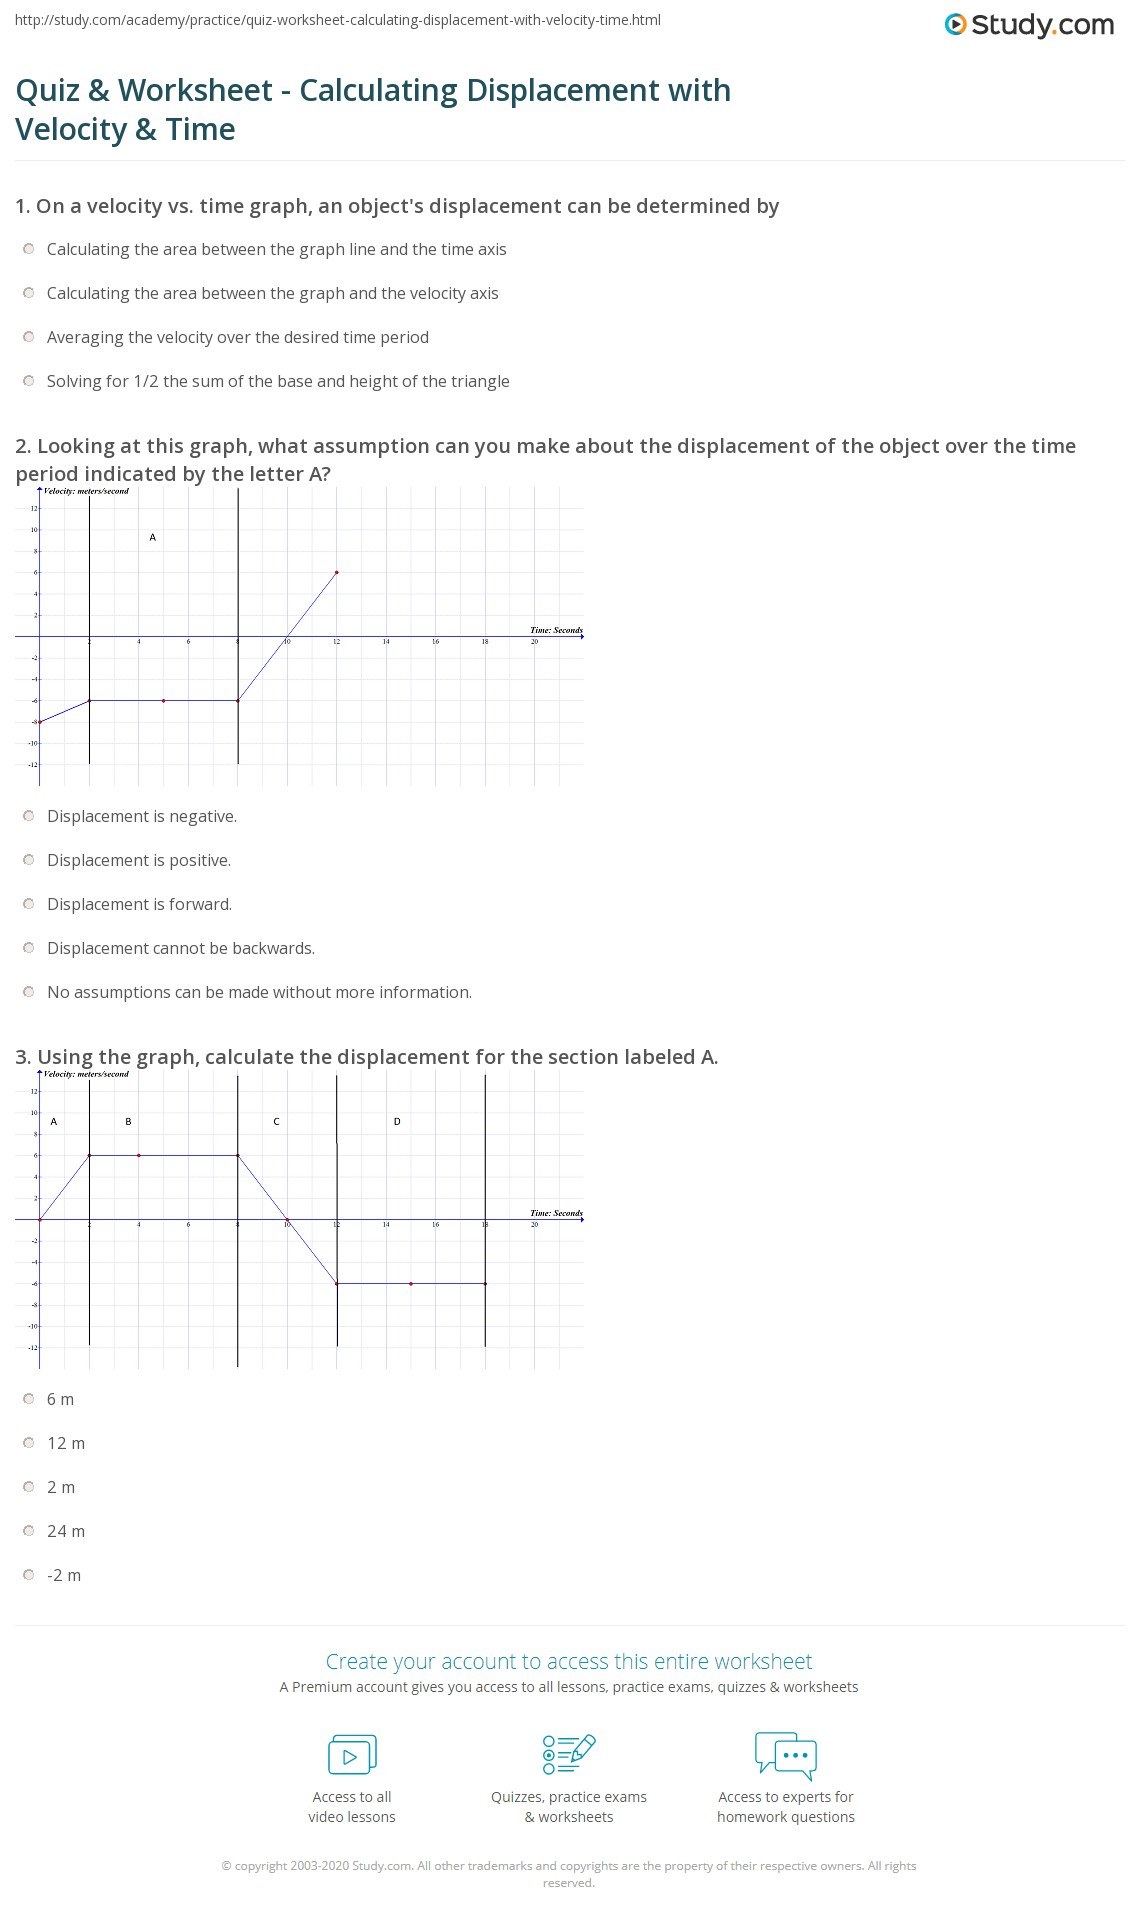 quiz worksheet calculating displacement with velocity time. Black Bedroom Furniture Sets. Home Design Ideas